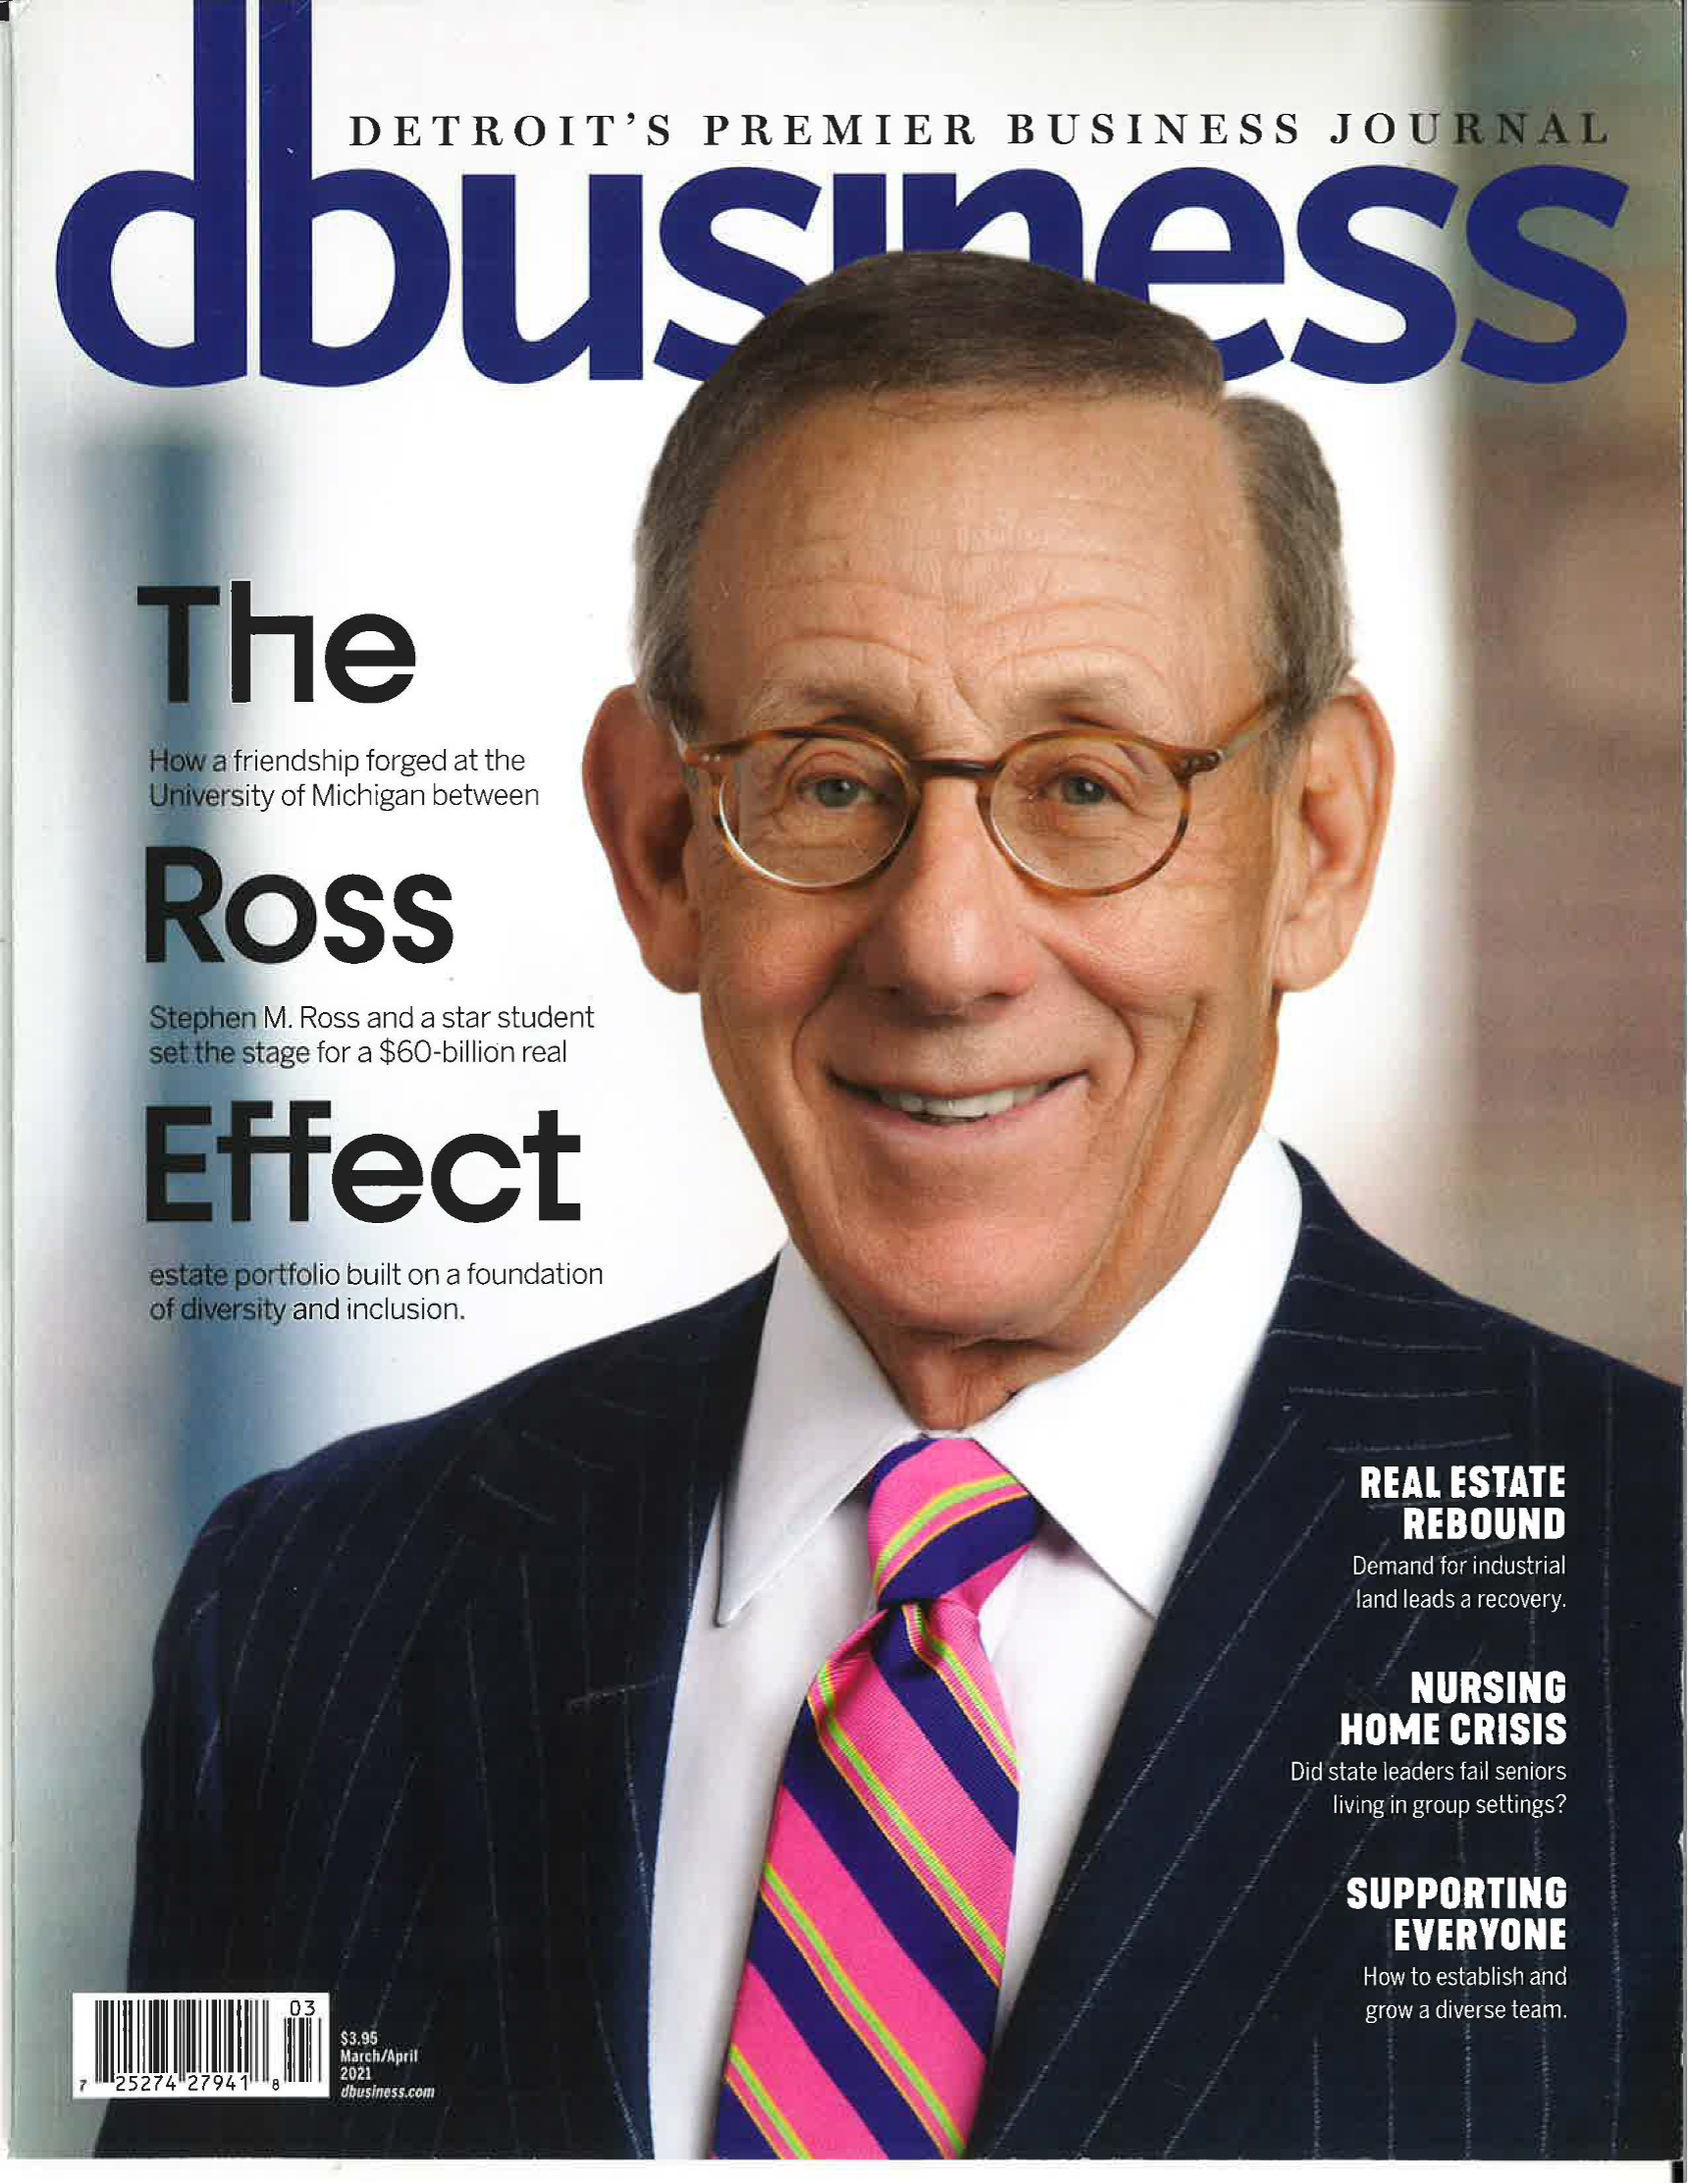 Cover of D Business Featured article 'the Ross Effect' picturing Stephen Ross